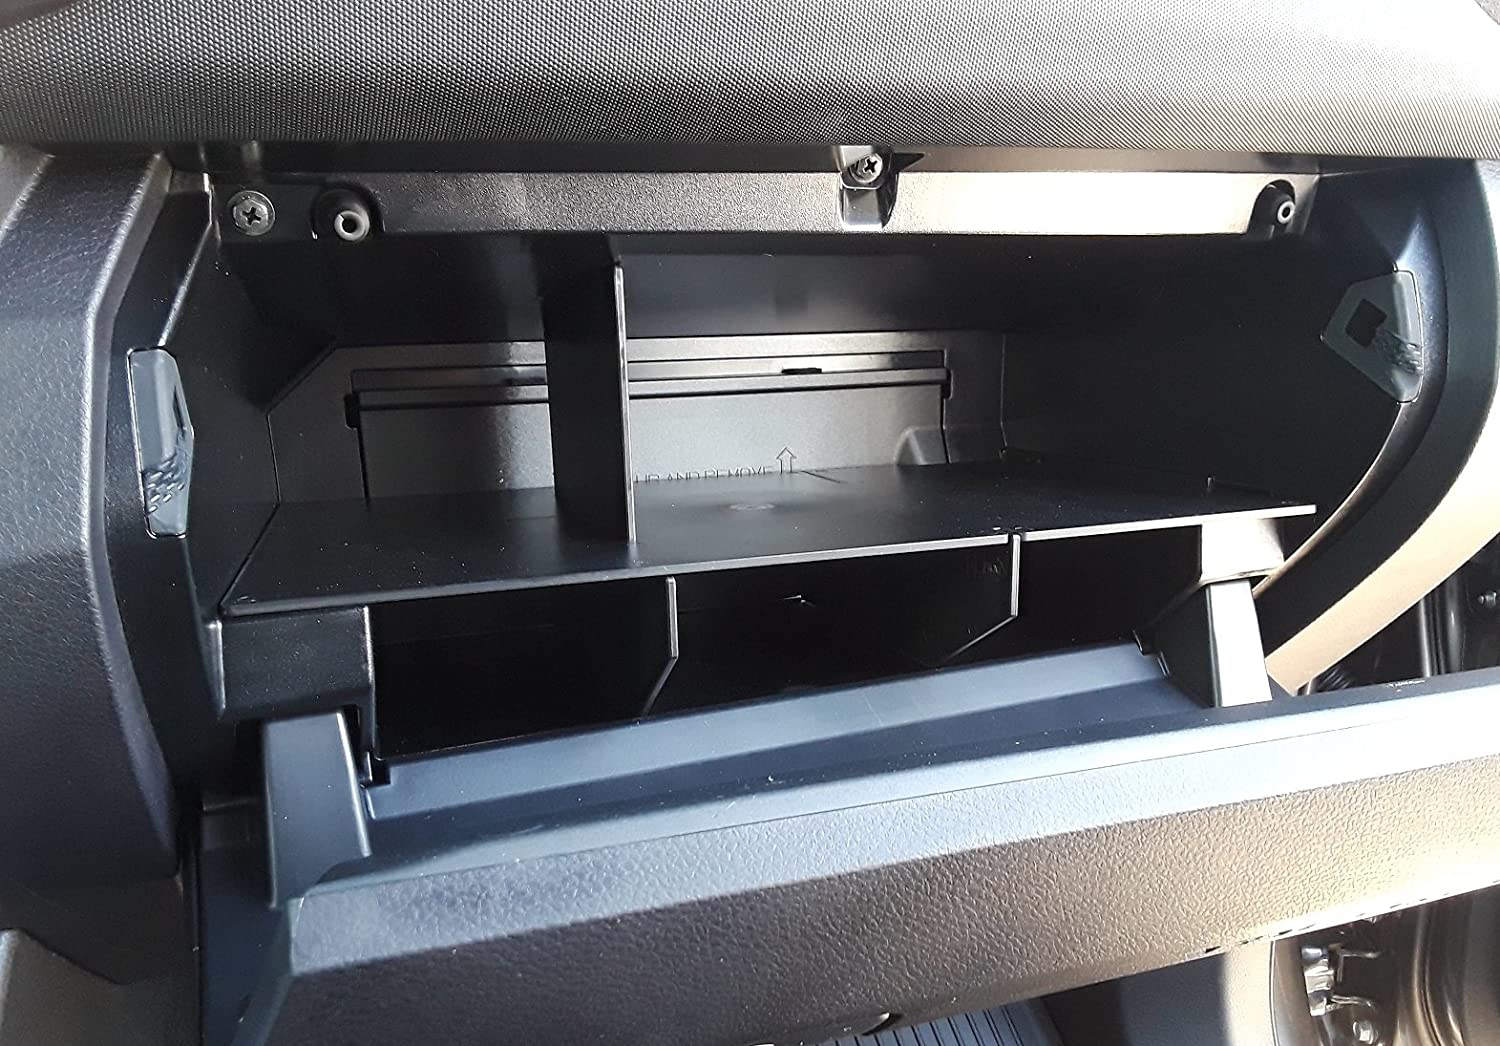 2016-2019 Vehicle OCD Glove Box Organizer for Toyota Tacoma - Made in USA Salex Organizers SLX144